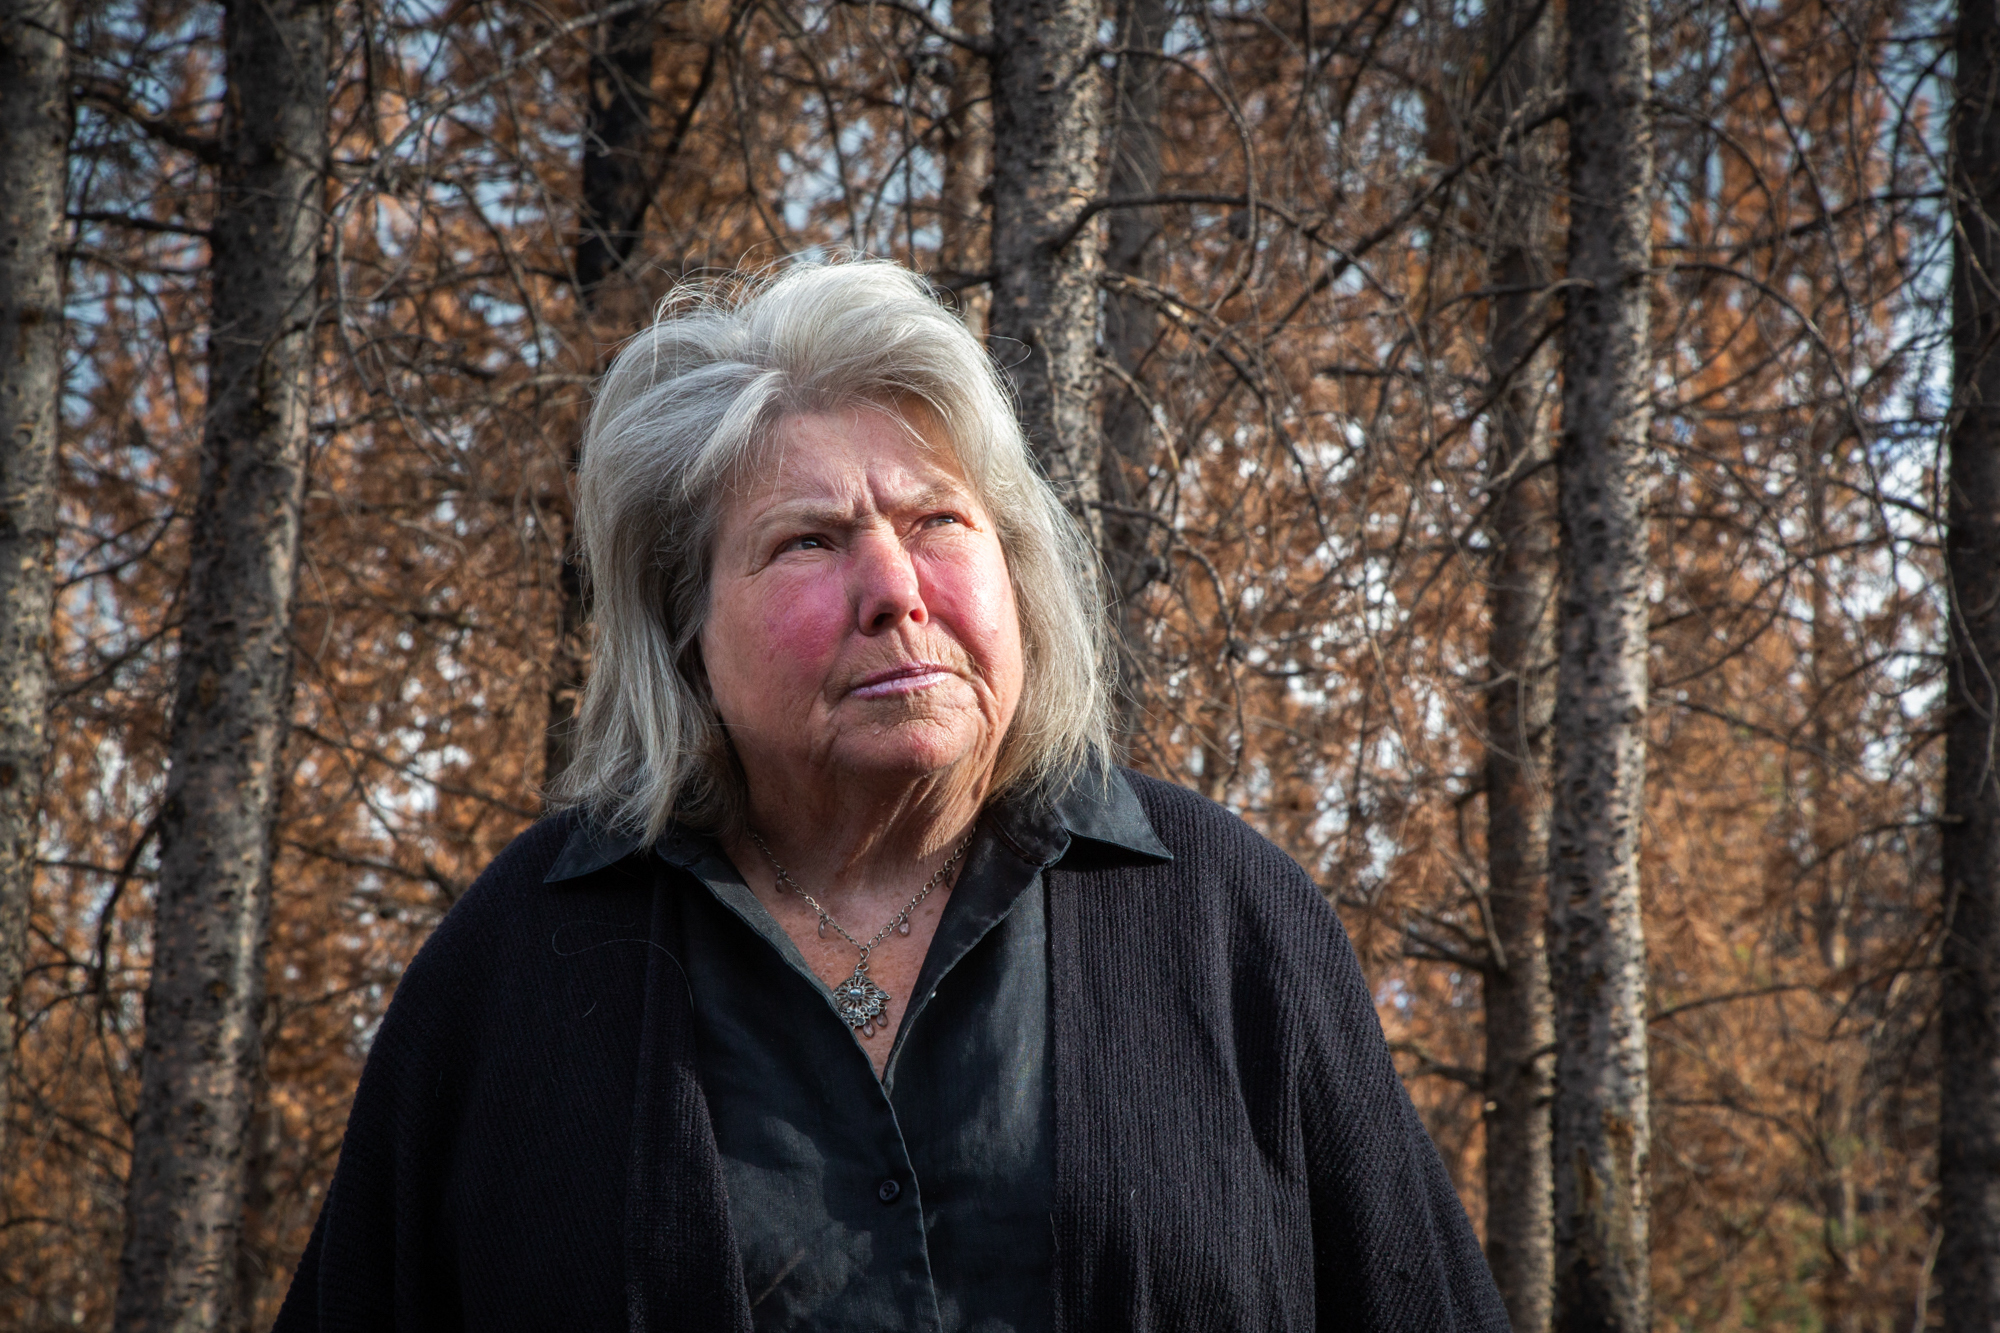 "Marlene ""Lanie"" Beebe - Marlene ""Lanie"" Beebe, who lives in Hoback Ranches, Wyoming, lost her home and a shed in the 2018 Roosevelt Fire. Beebe lived out of her truck until a neighbor bought her a trailer to place on her property. Beebe is a potter and artist, and the fire destroyed her journals and art collections. (Drew Hutchinson/News21)"